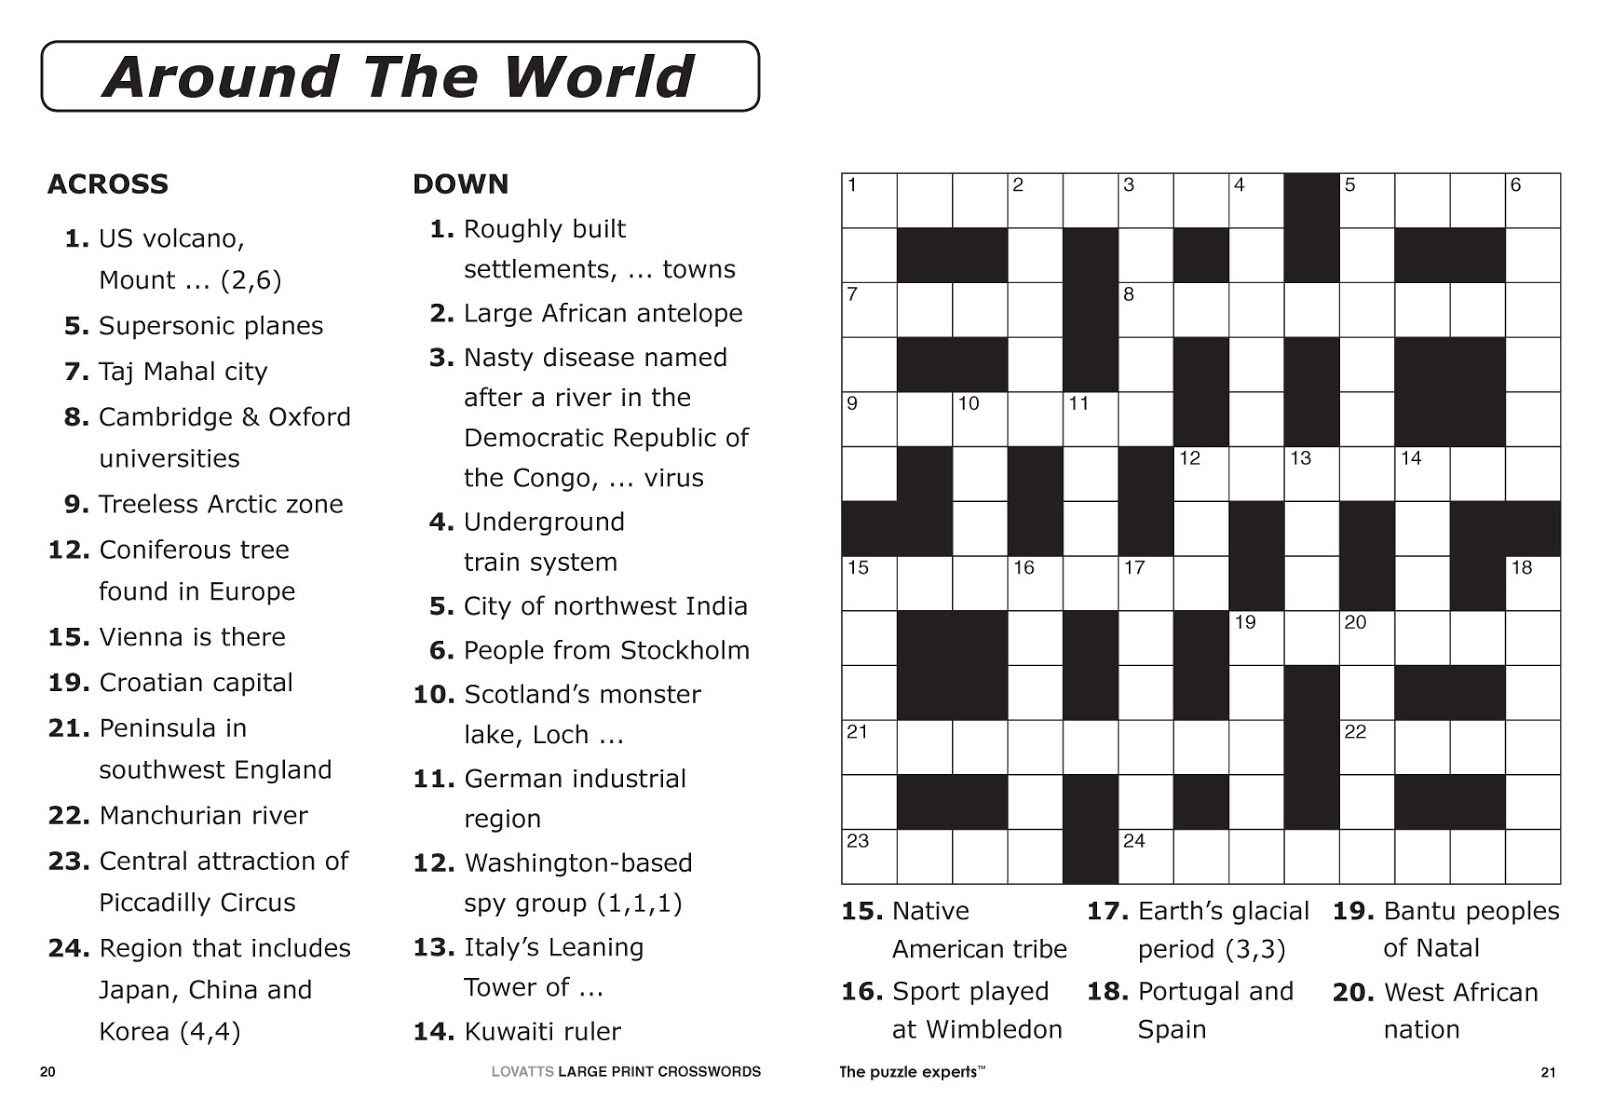 Free Printable Large Print Crossword Puzzles | M3U8 - Printable Crosswords For Young Adults